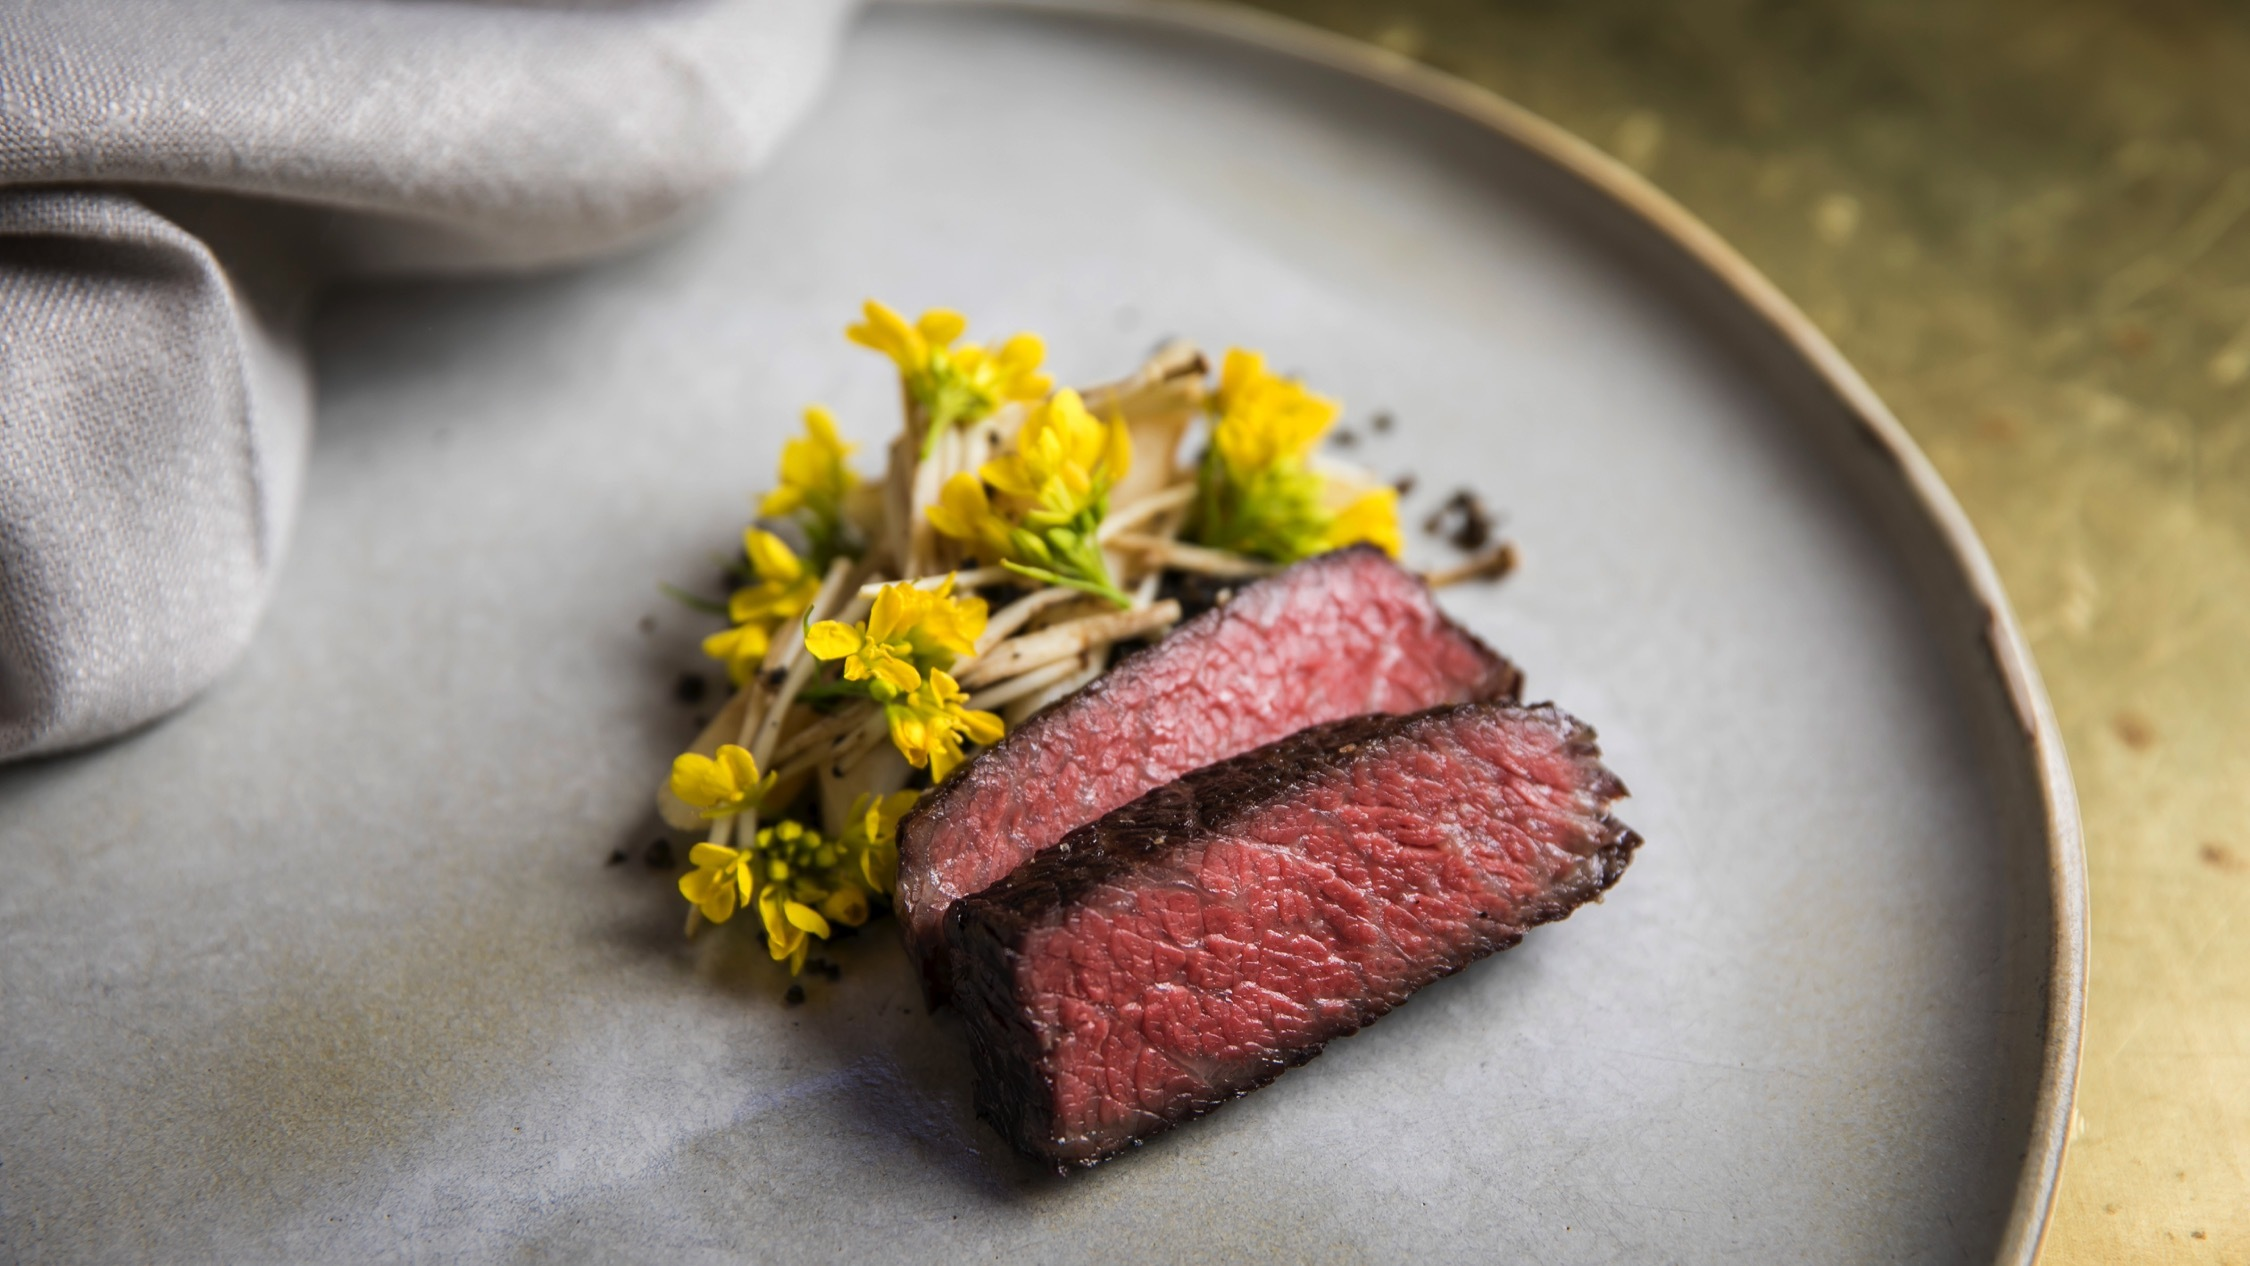 Lunch at some of Sydney's best restaurants for less than $50 in October